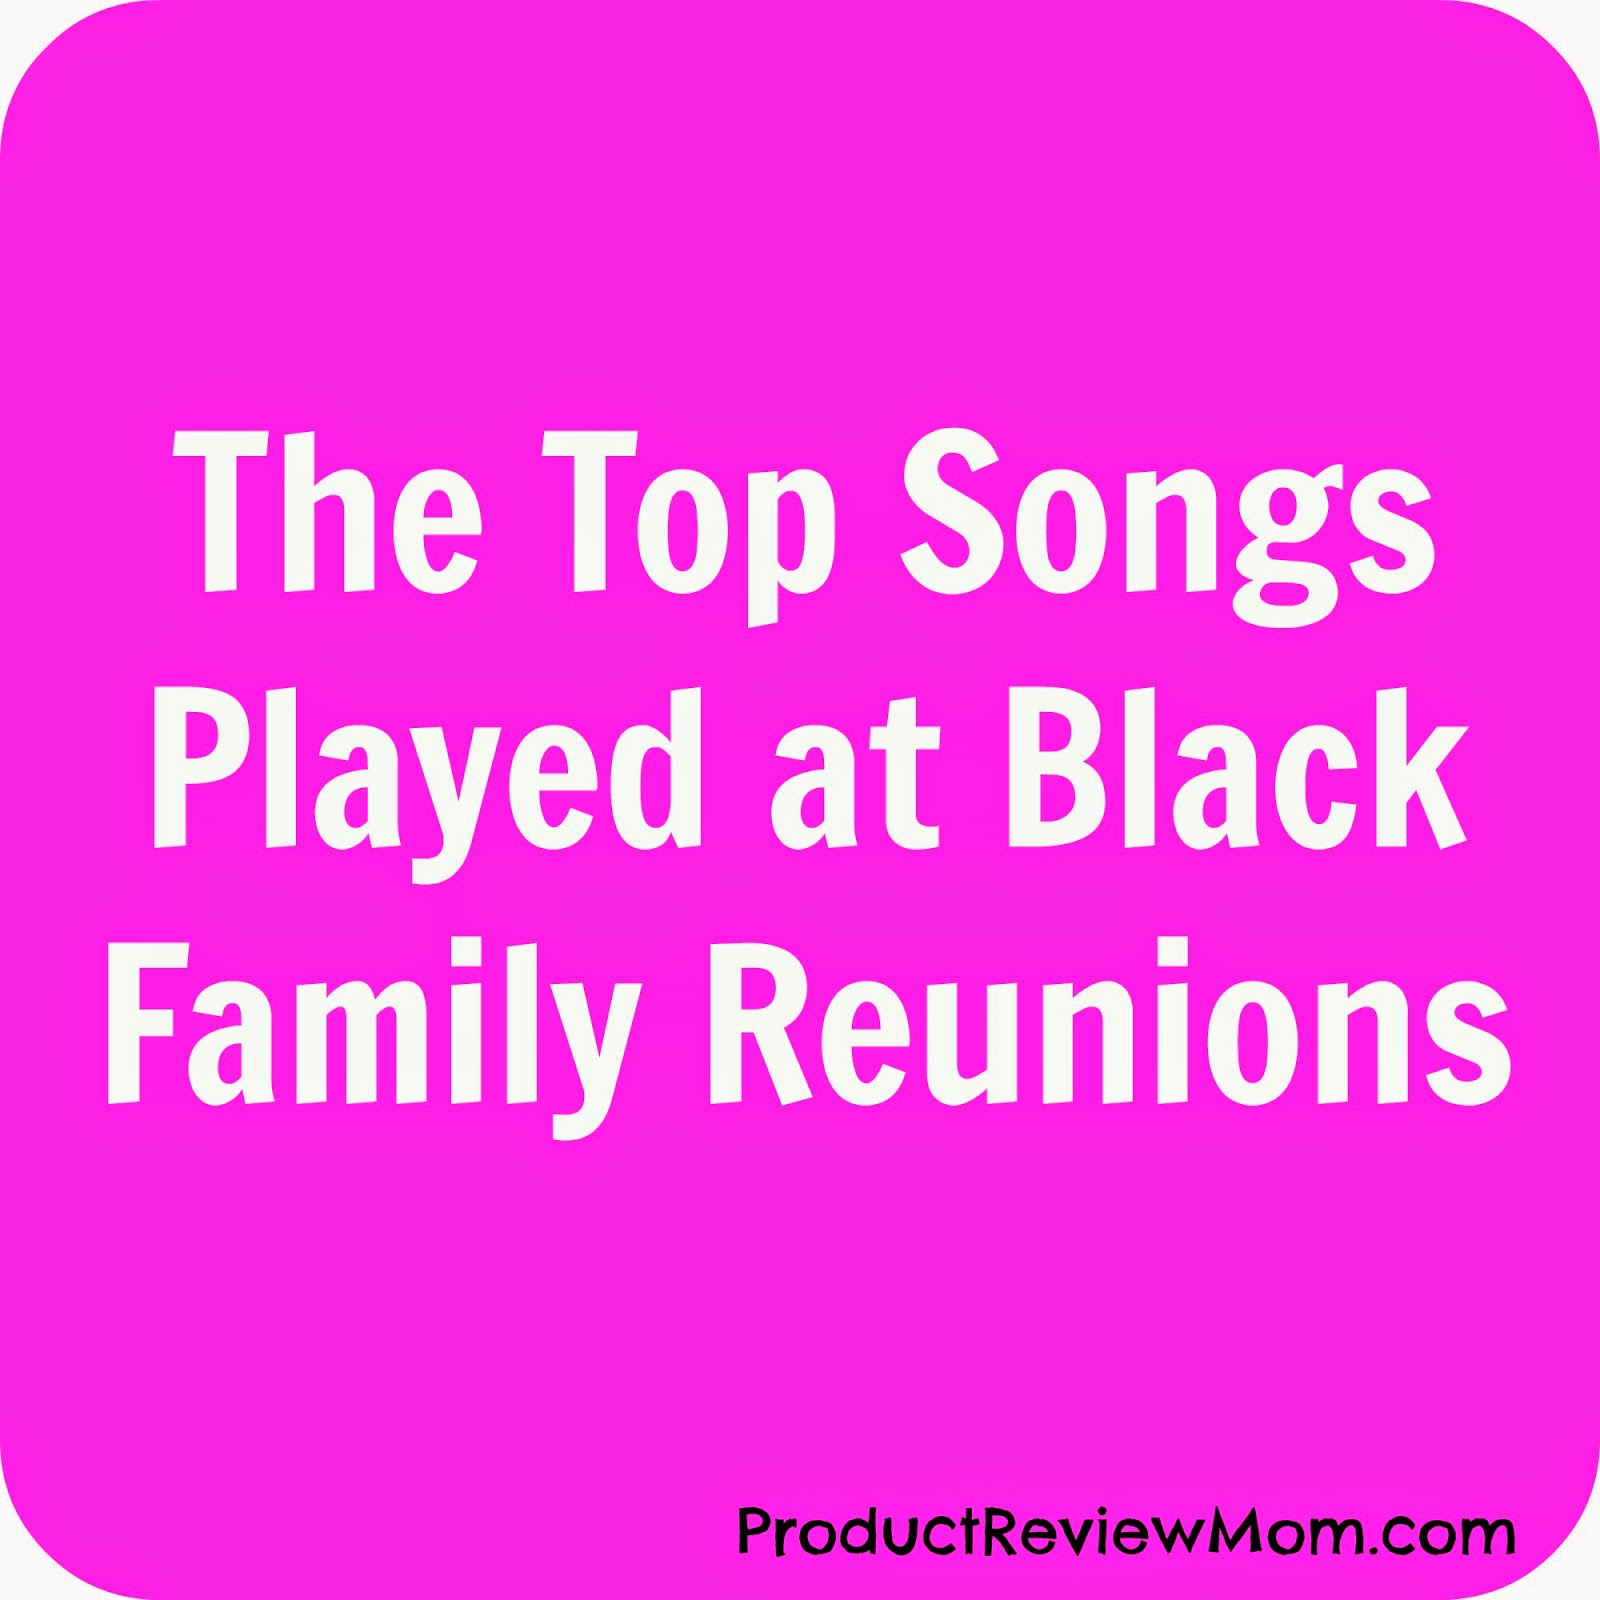 The Top Songs Played at Black Family Reunions via ProductReviewMom.com